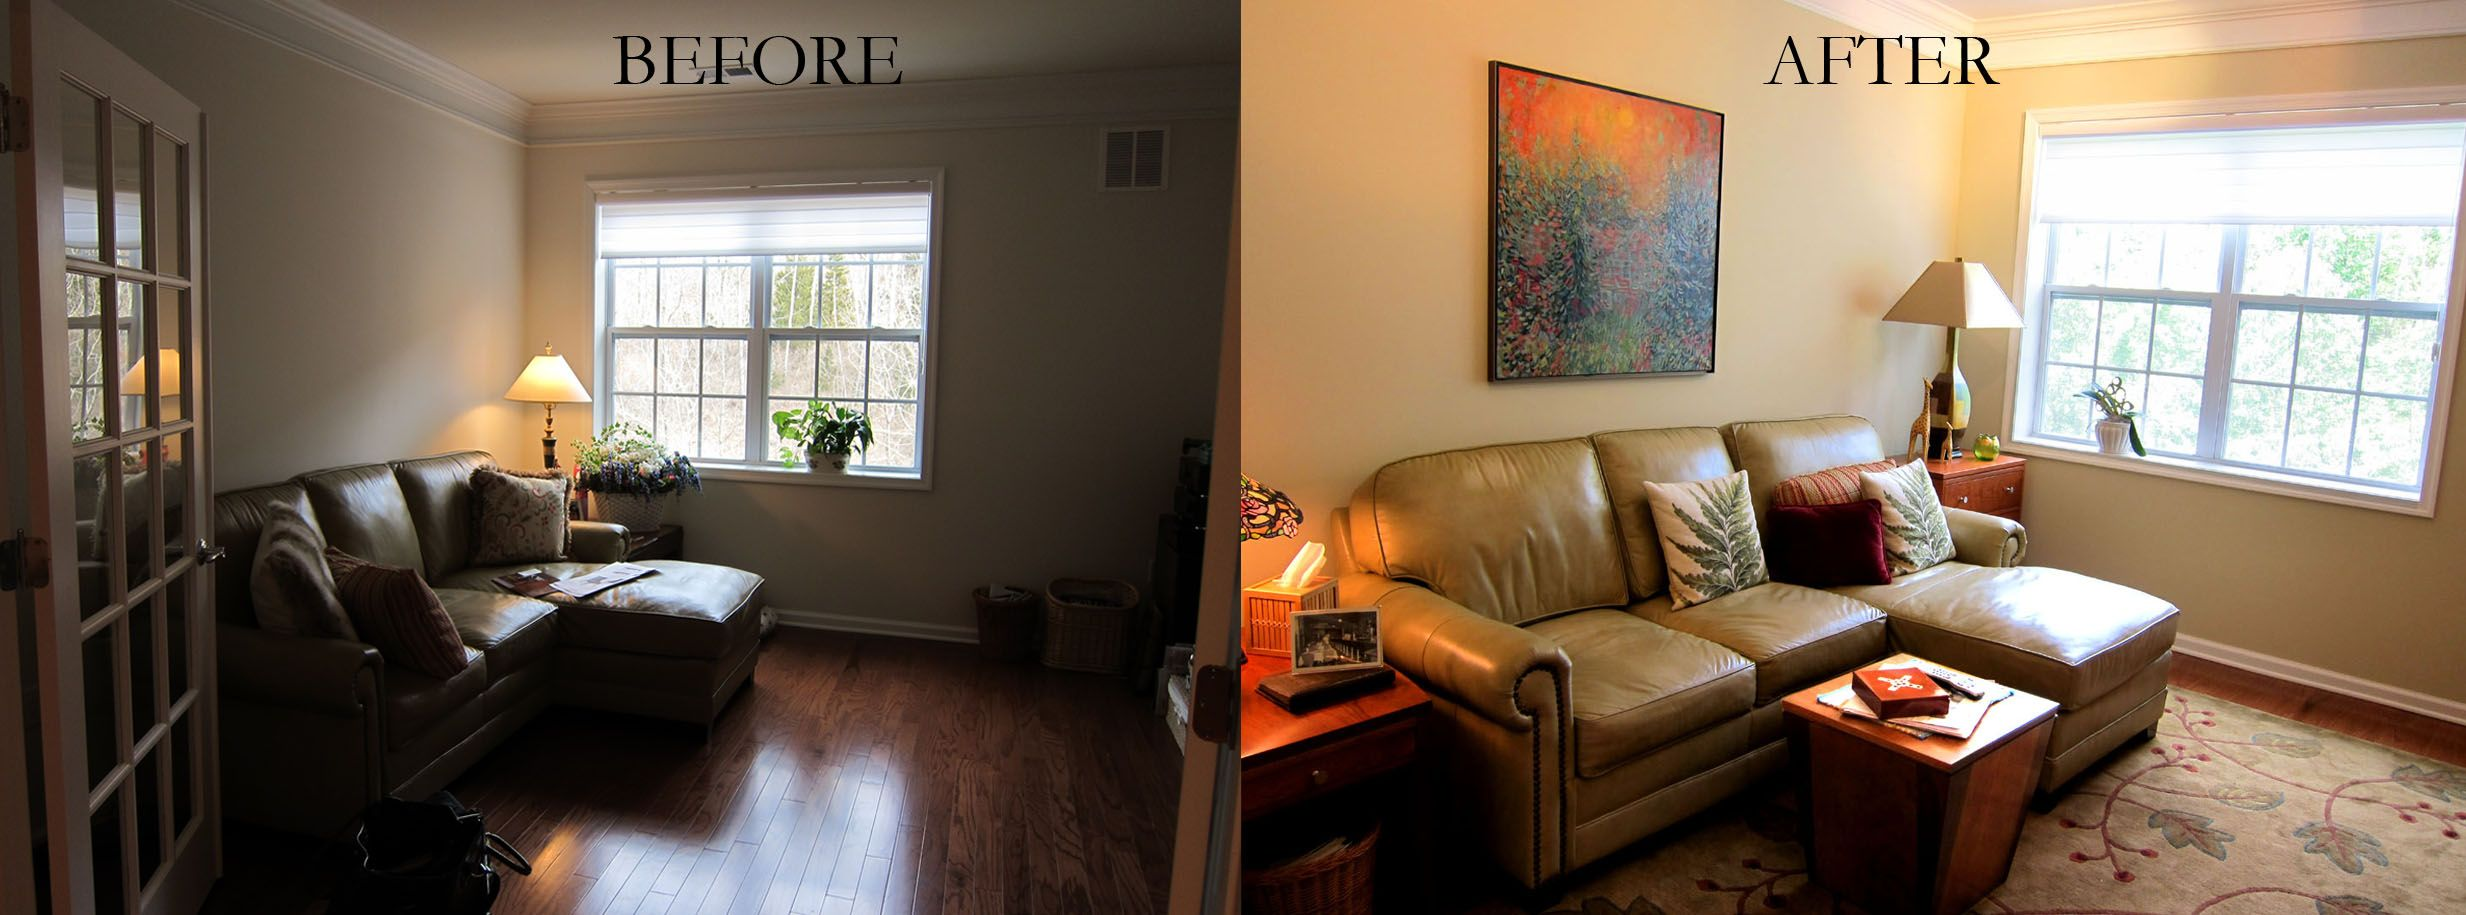 Before And After Www Artistry Interiors Com Interior Design